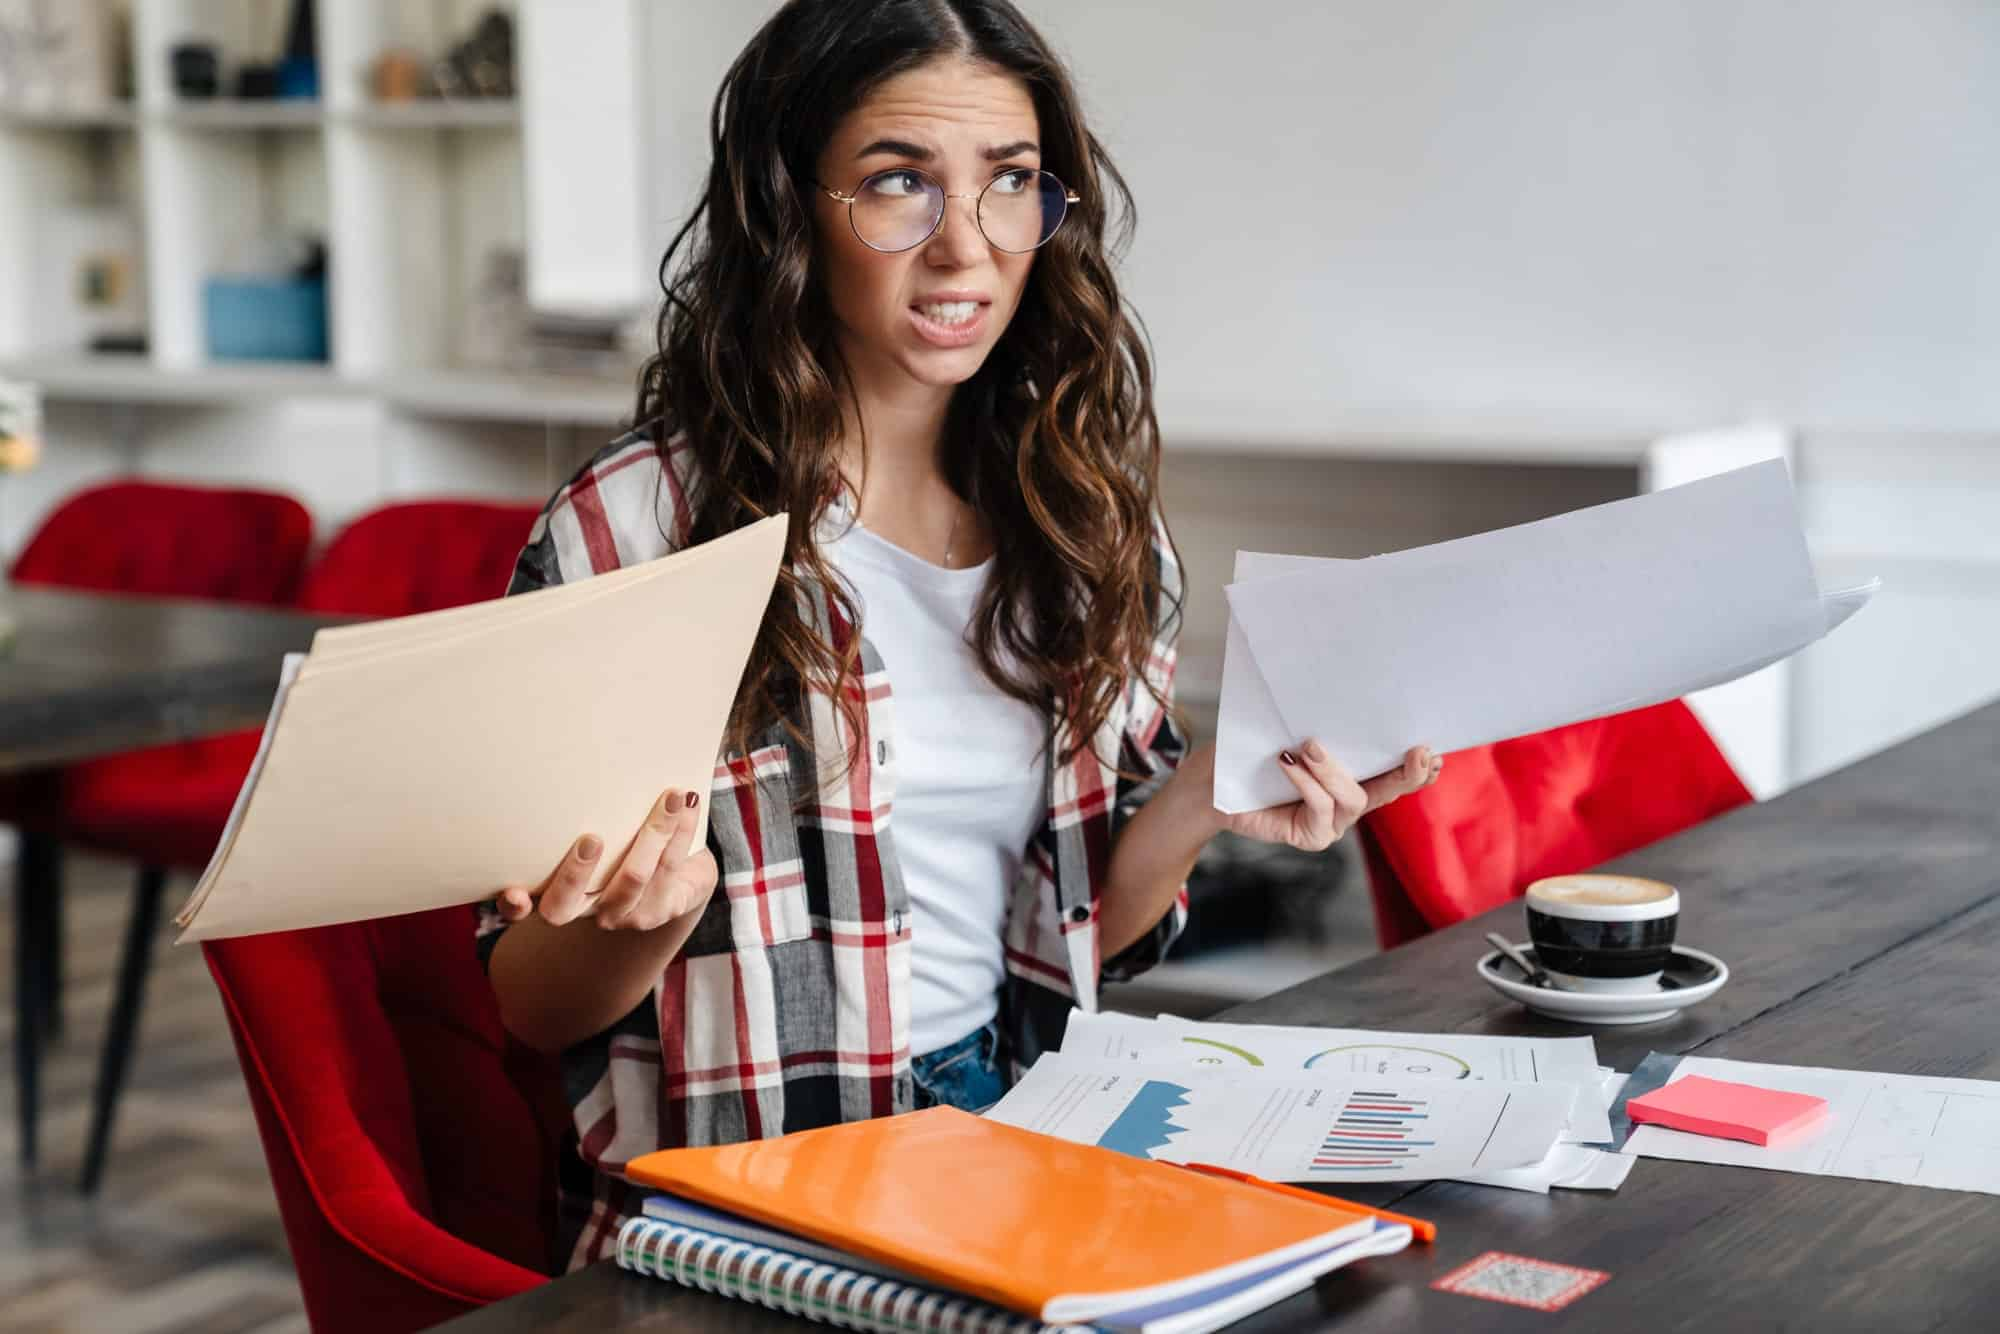 Confused fruustrated young woman working